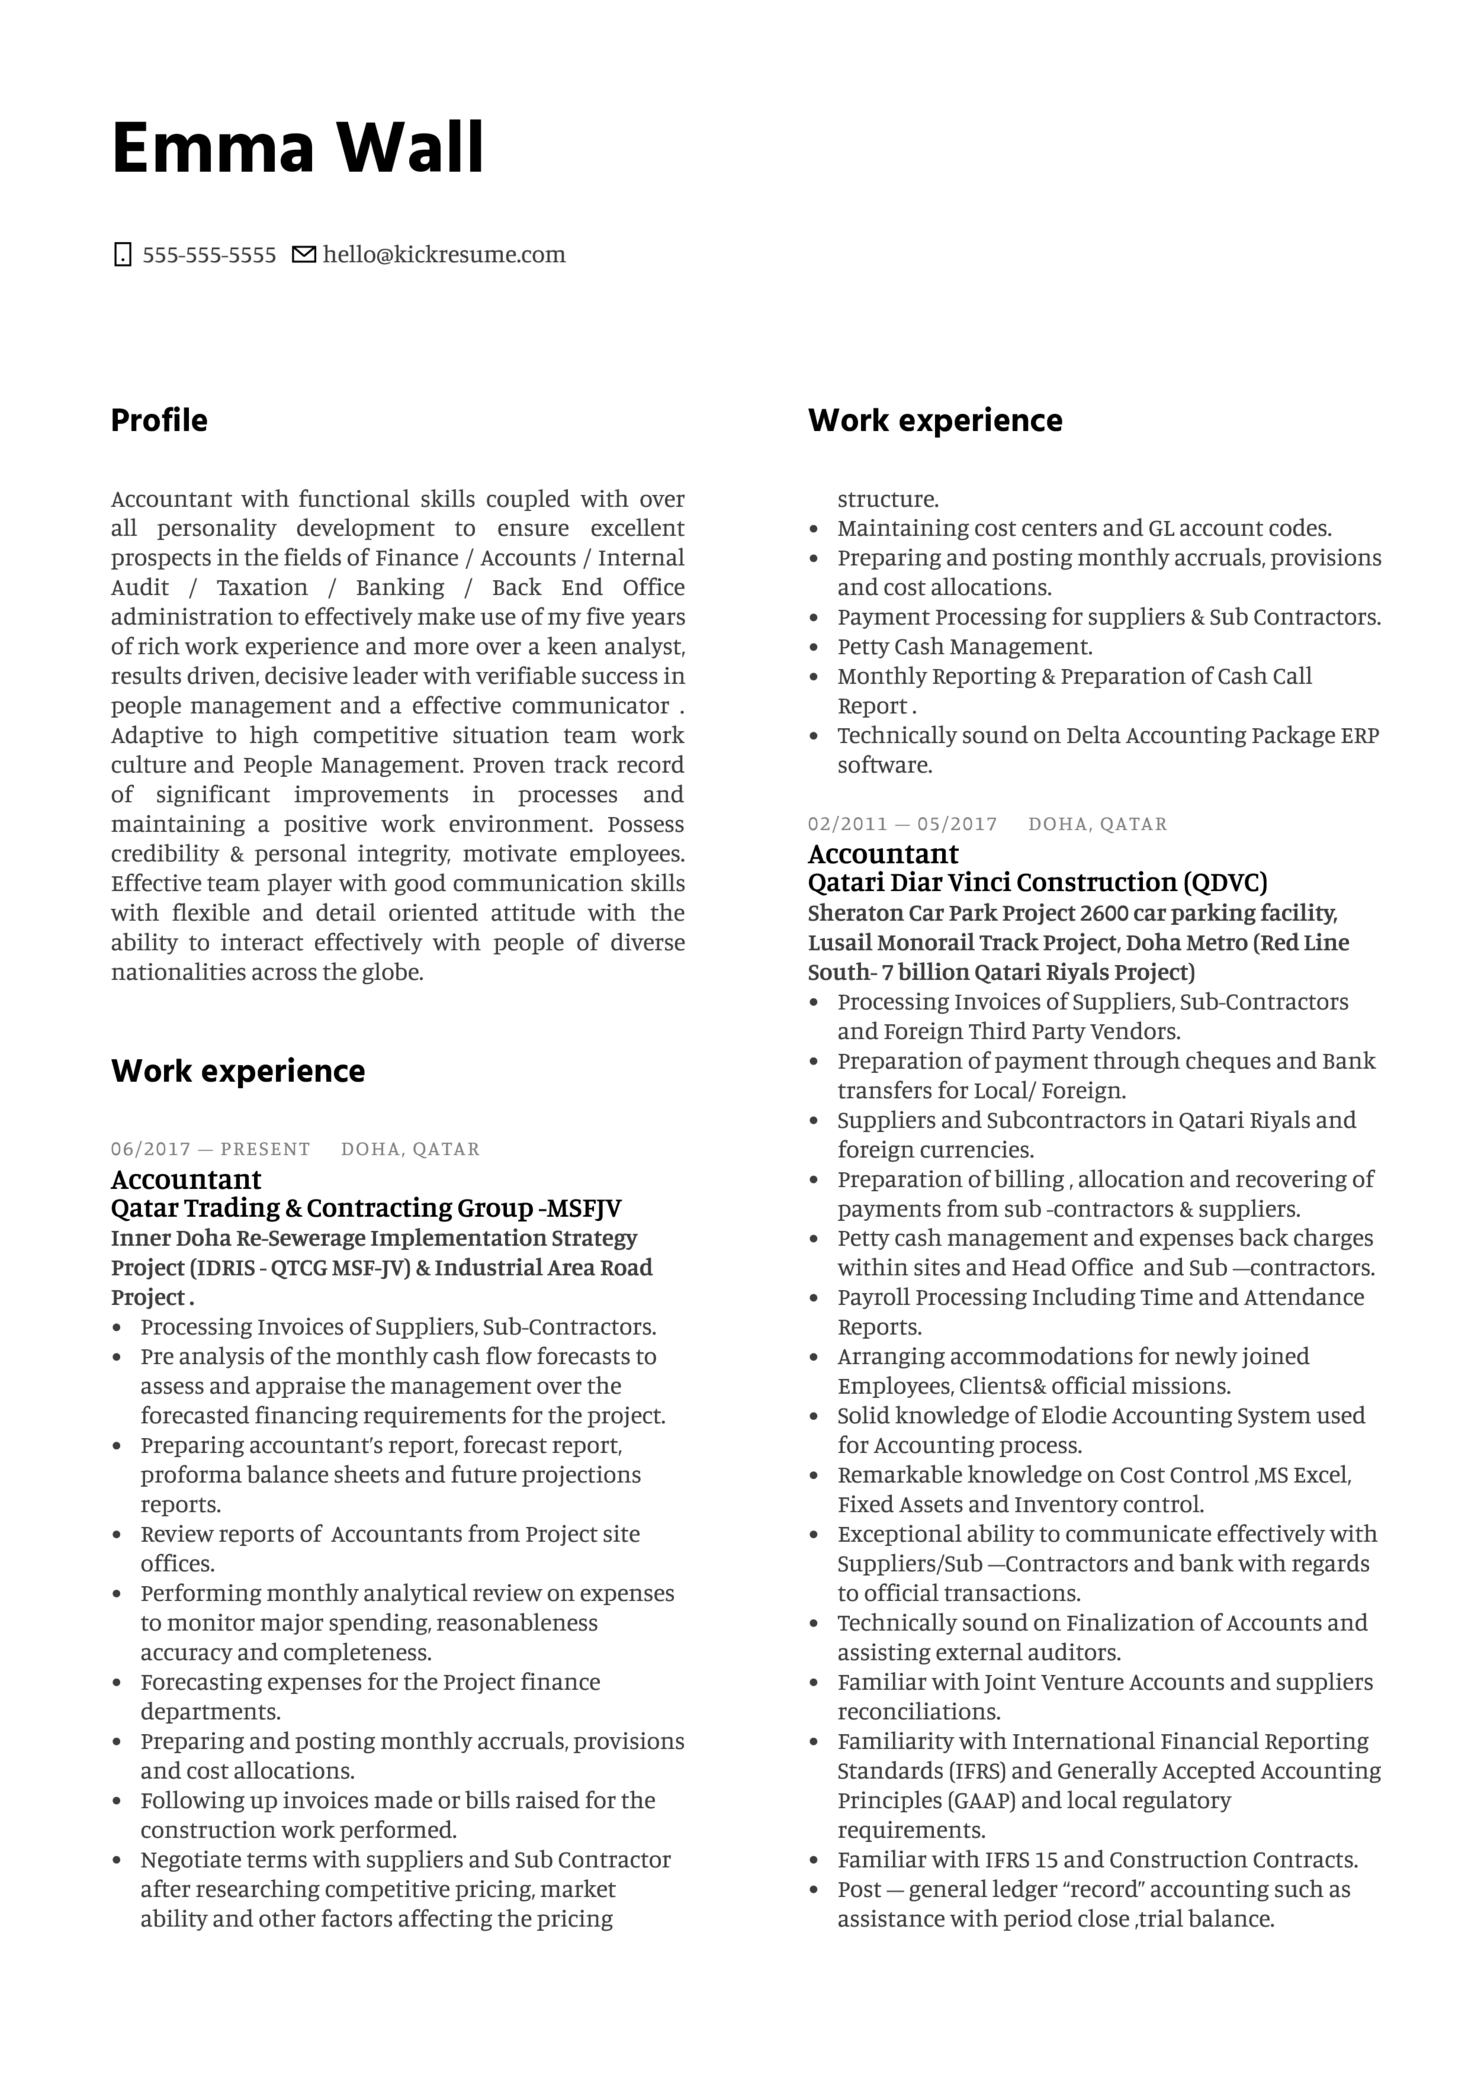 DB Schenker Accountant Resume Example (Teil 1)